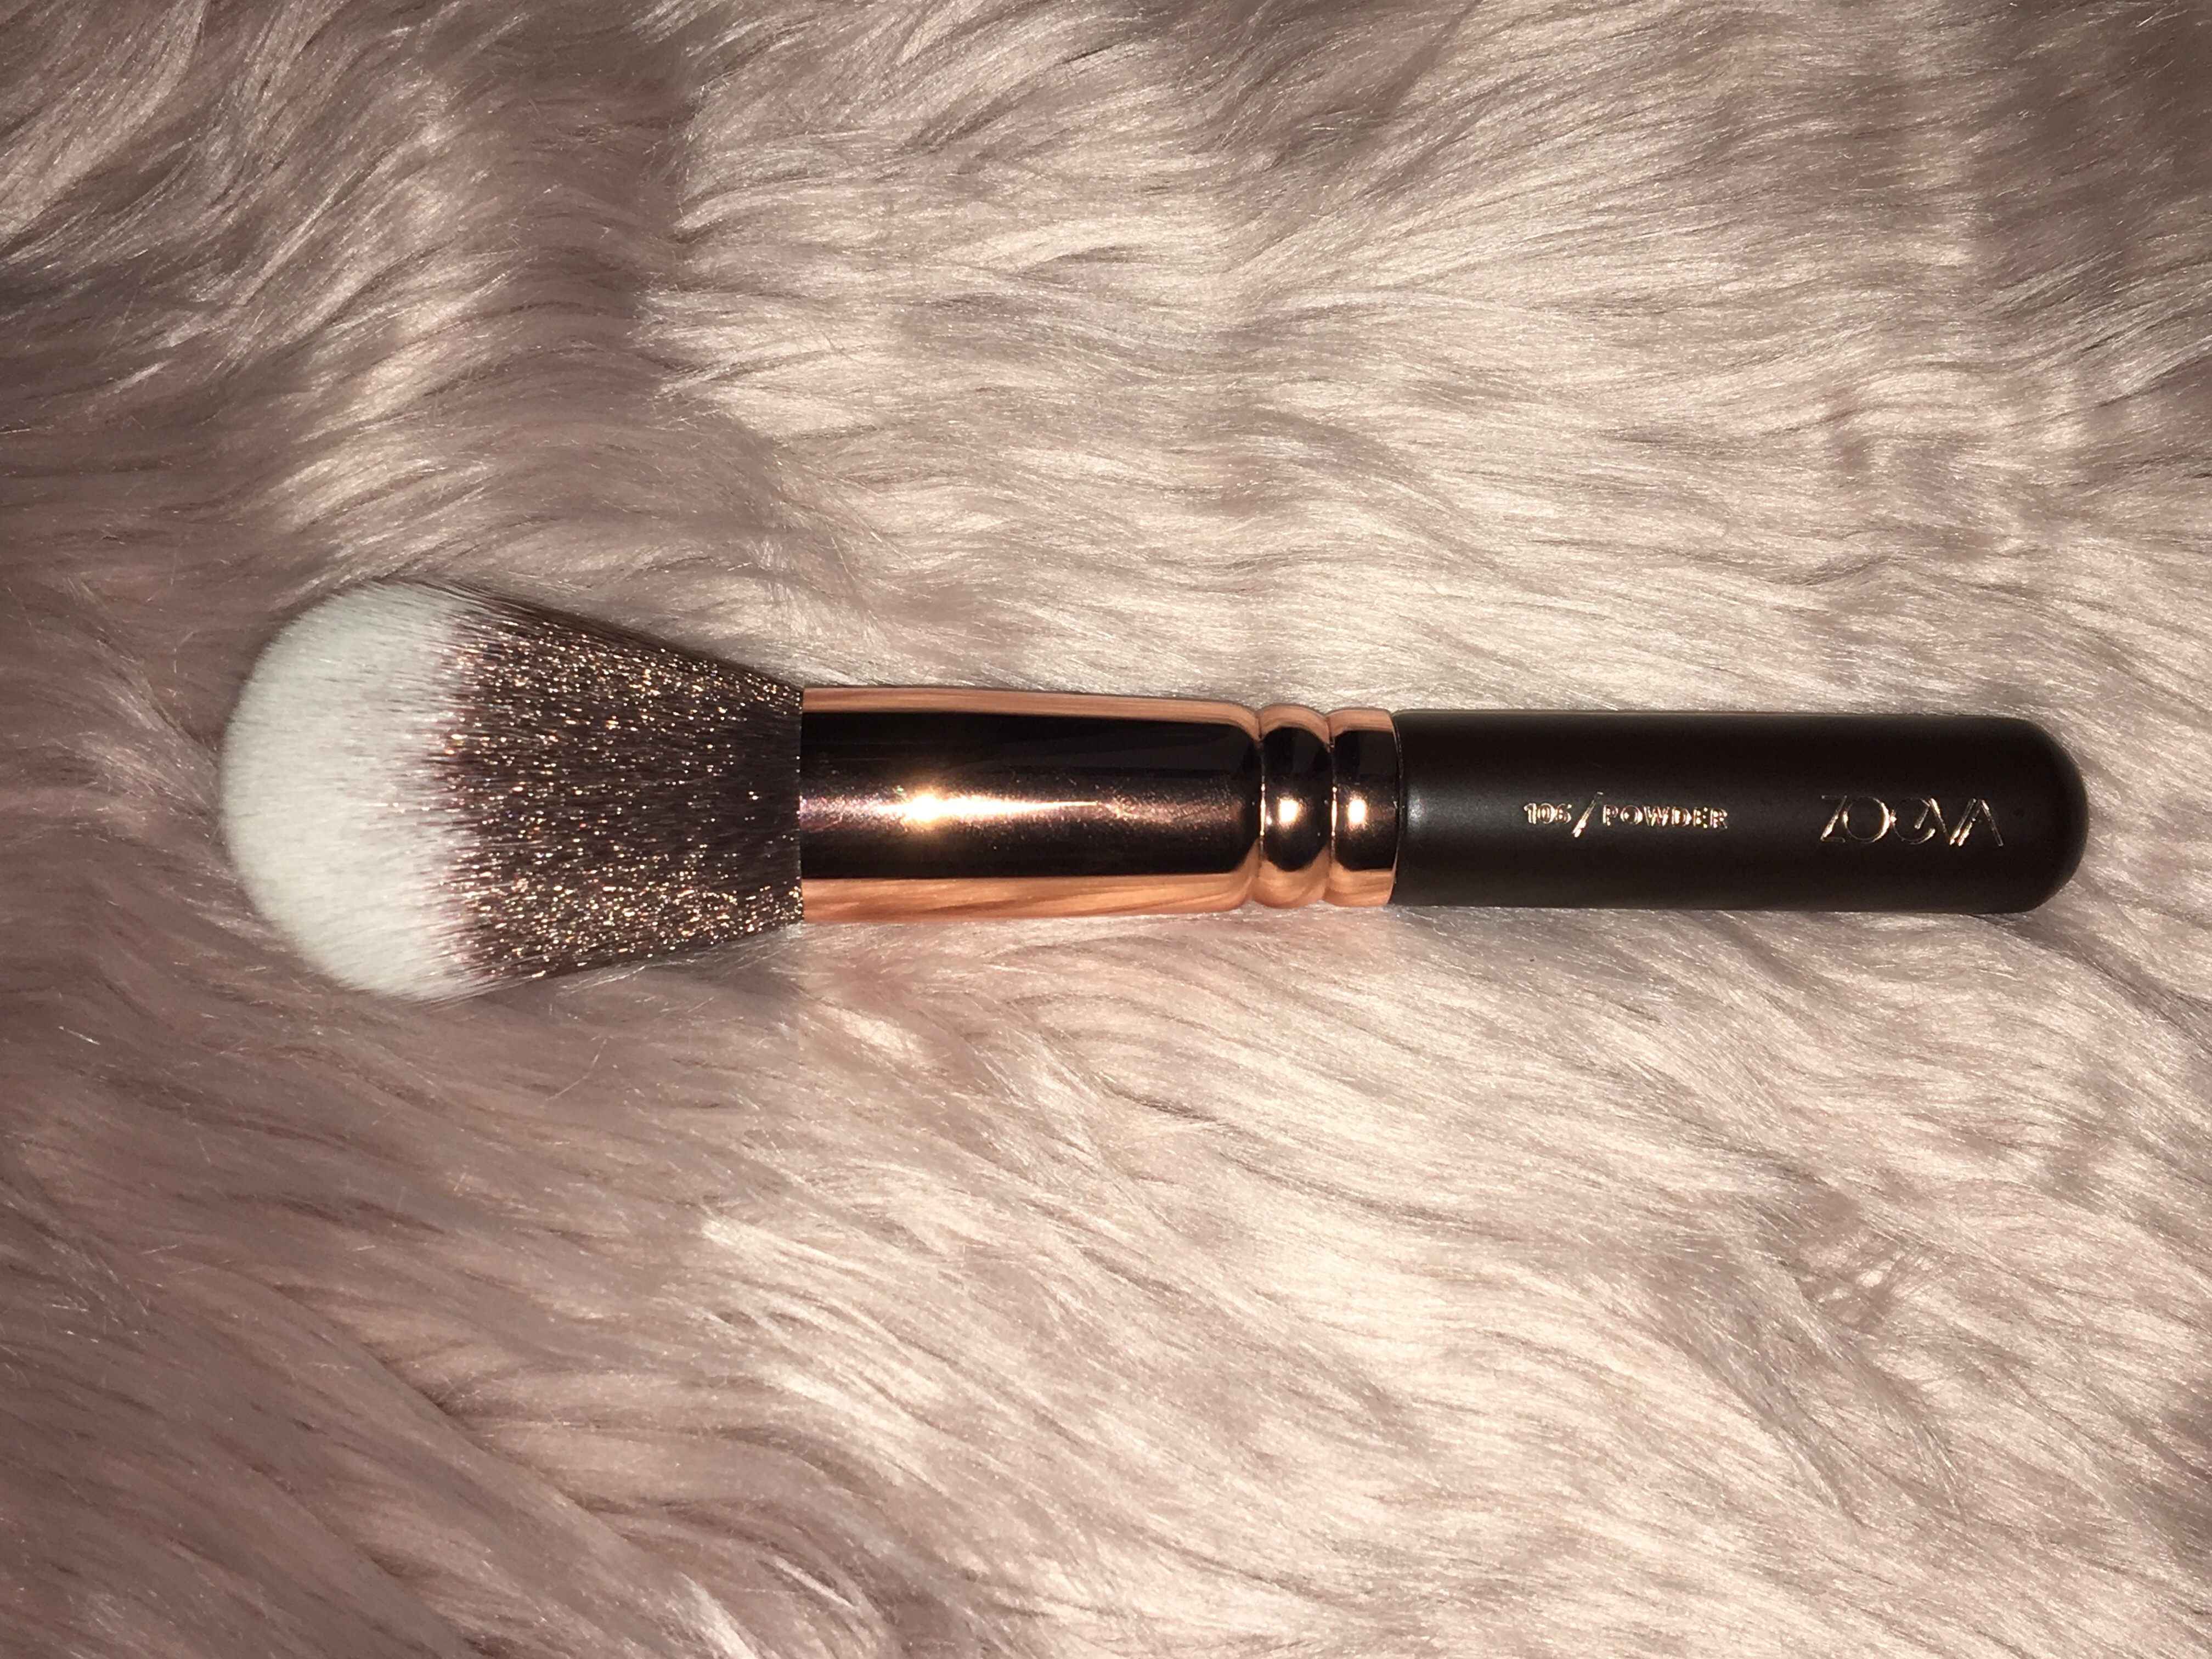 Zoeva Rose Golden Luxury Brush Set Vol1 Review Dark Brown 8 Piece Bursh Bag This Is Supposed To Be A Powder Used Any Liquid Or Cream Products But I Dont Really Like It Picks Up Too Much Product And Does Not Spread